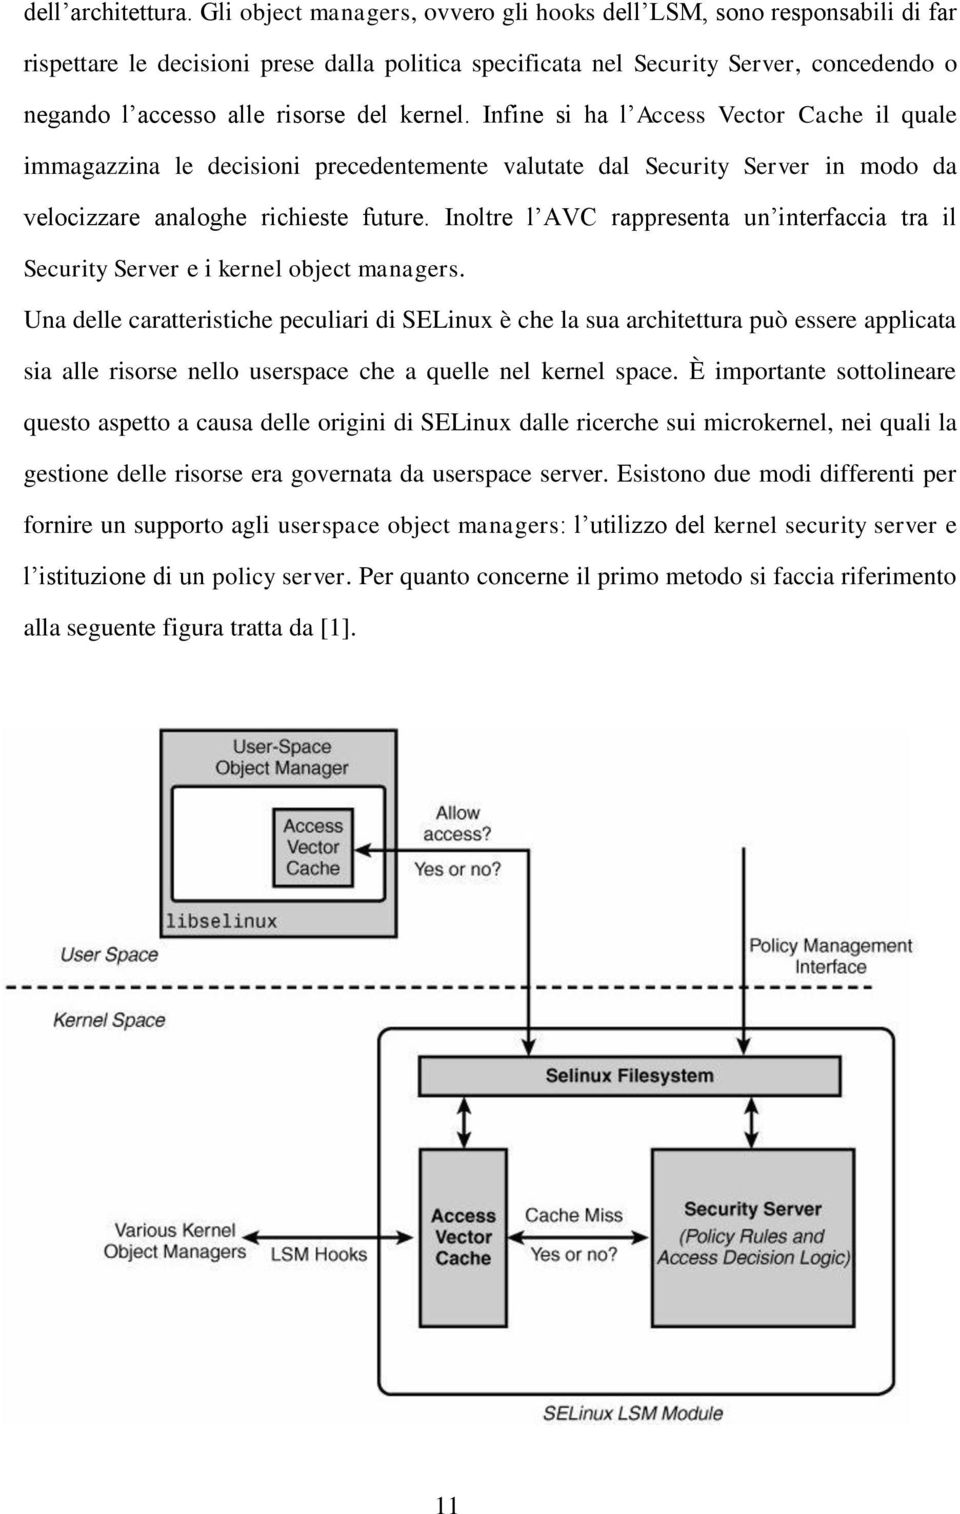 kernel. Infine si ha l Access Vector Cache il quale immagazzina le decisioni precedentemente valutate dal Security Server in modo da velocizzare analoghe richieste future.